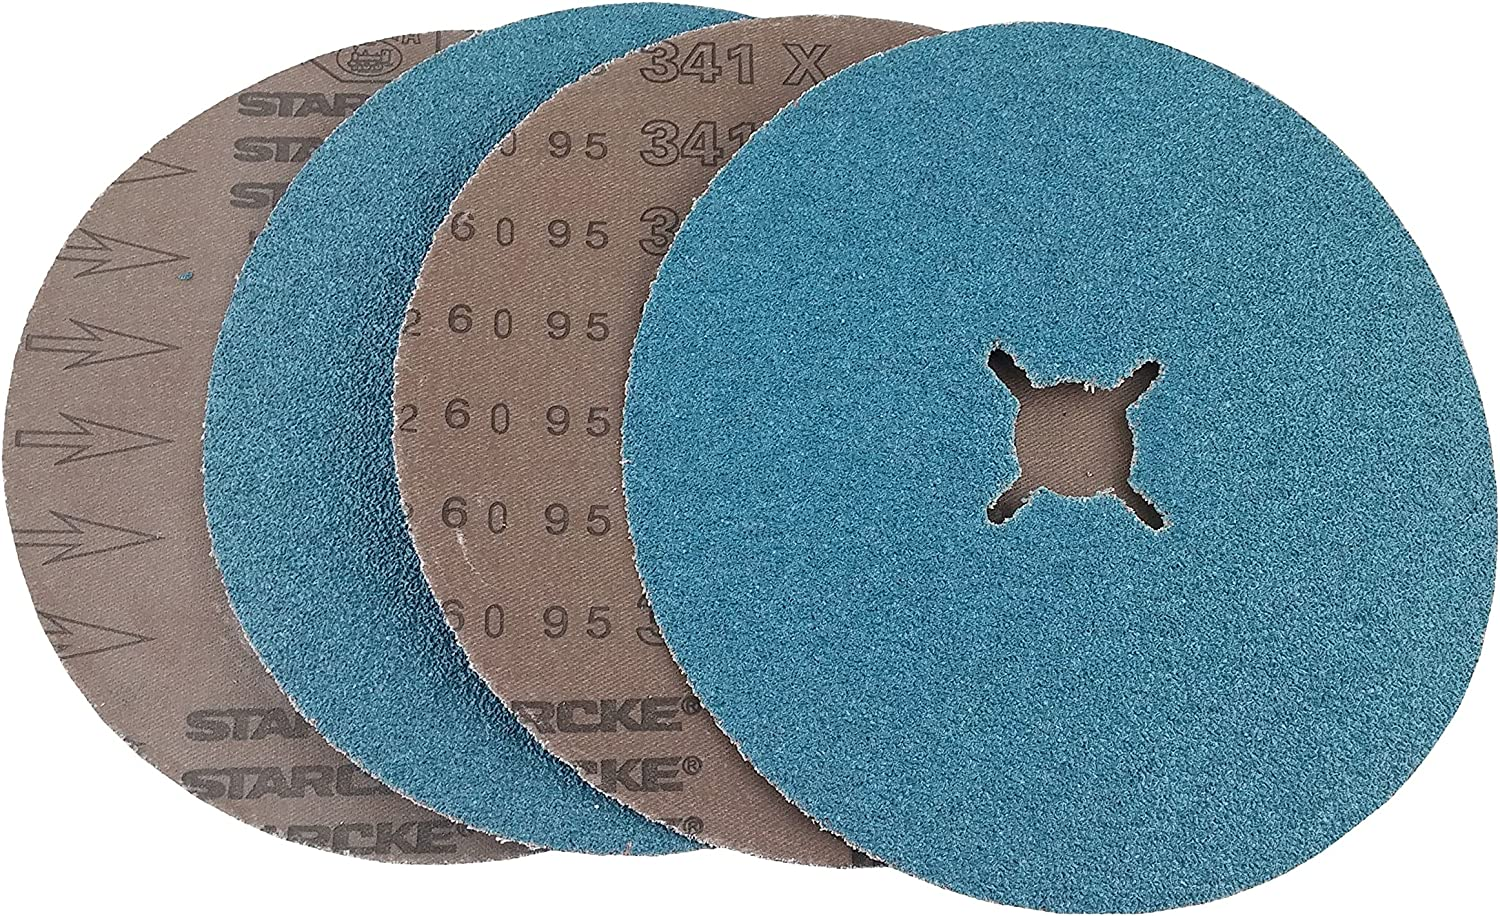 Starcke Premium 7 Inch Attention brand Slotted Edger Floor - Discs Sanding Wood Popular shop is the lowest price challenge